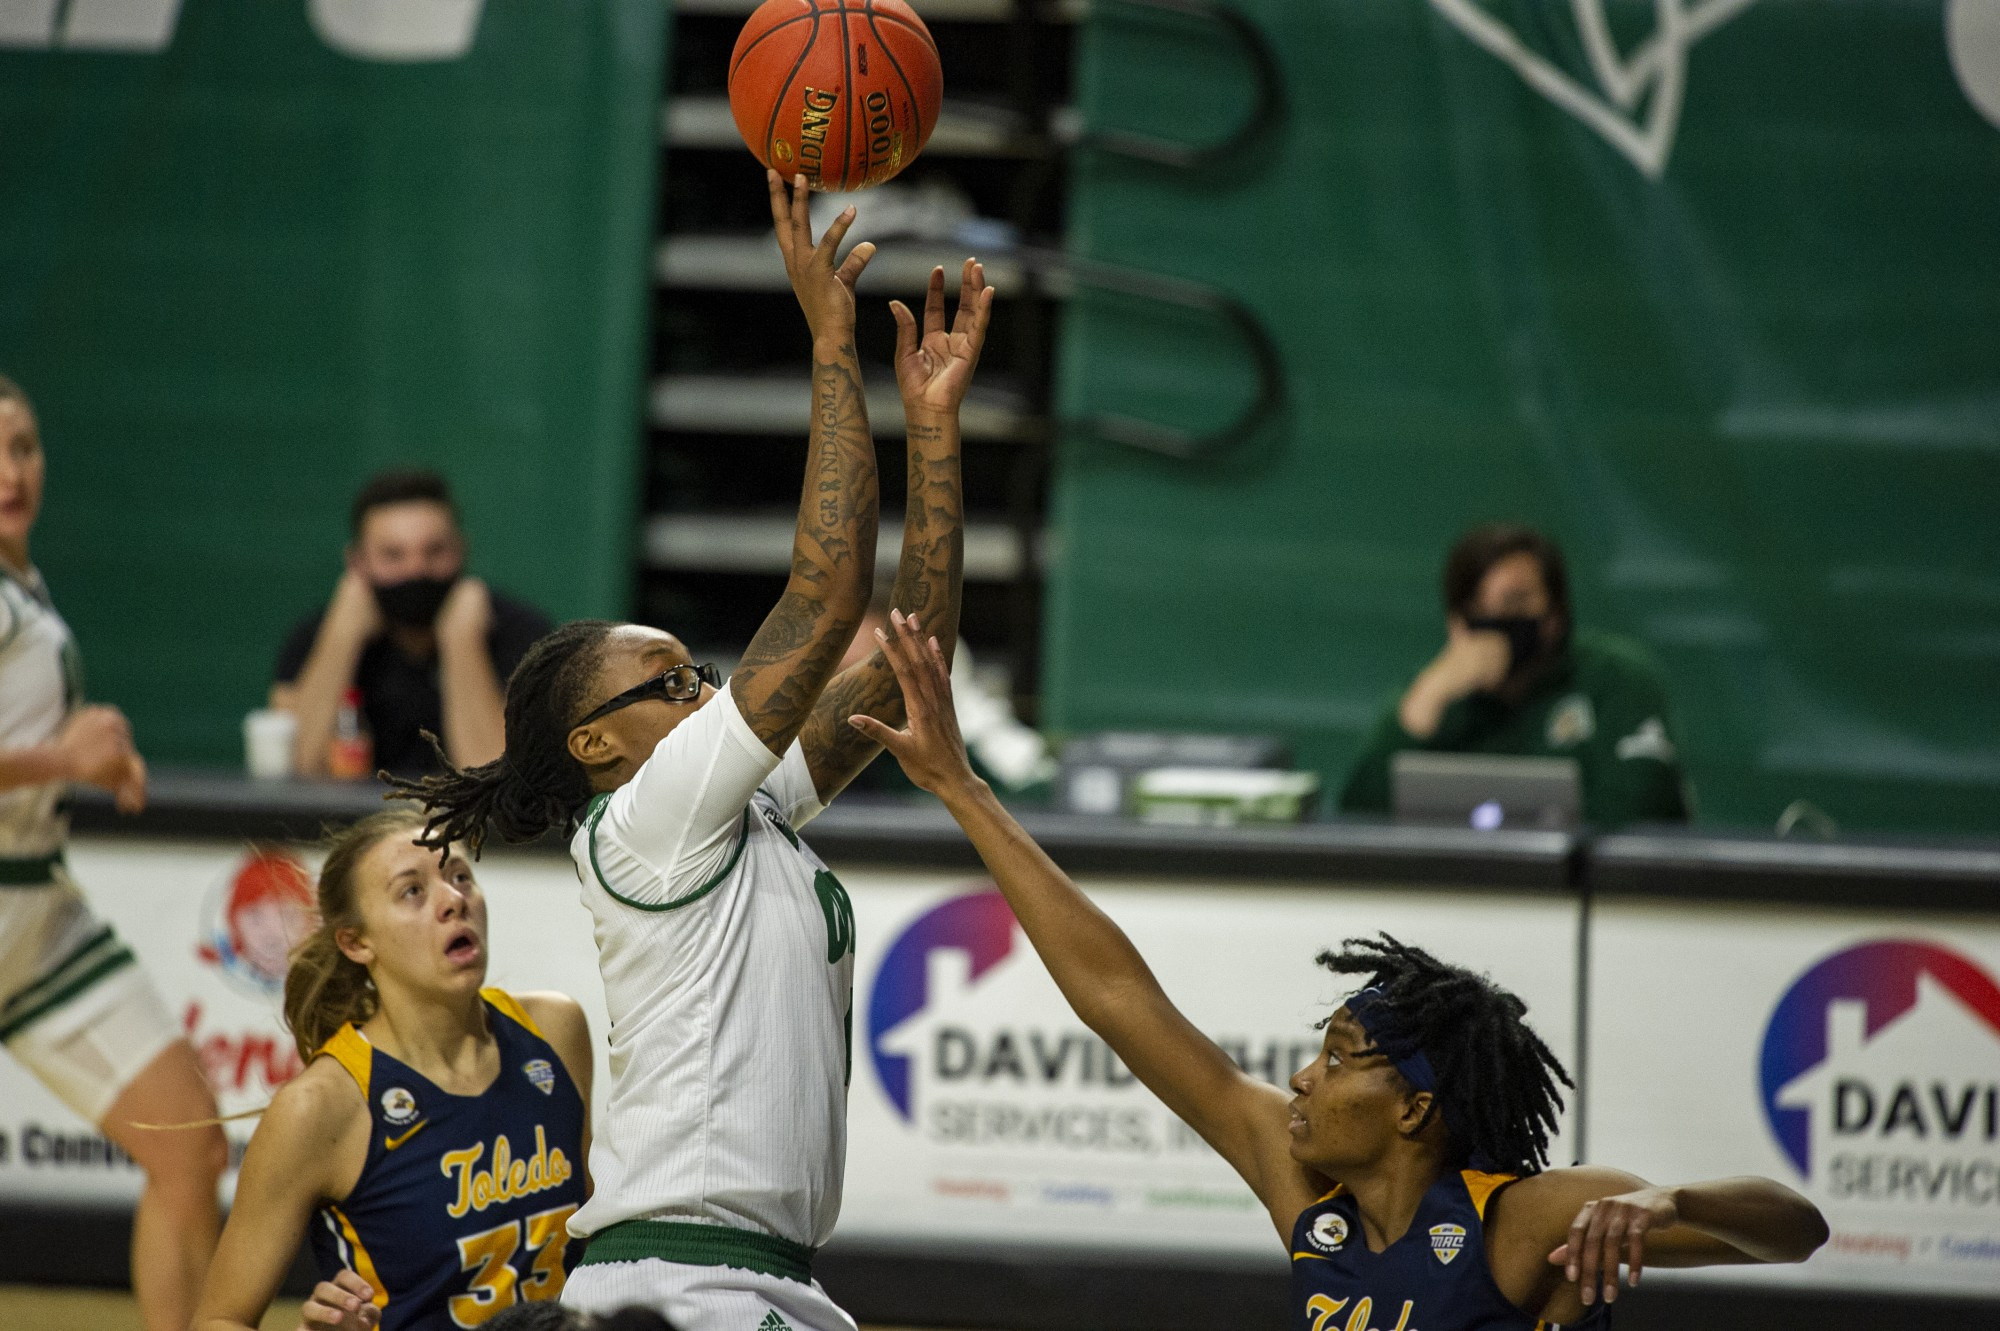 Ohio University's, Erica Johnson (4) goes up for a quick shot with heavy pressure from The University of Toledo's, Hallie Idowu (35) and Sammi Mikonowicz (33), during the home game on Saturday, Jan. 9, 2021 in Athens, Ohio.